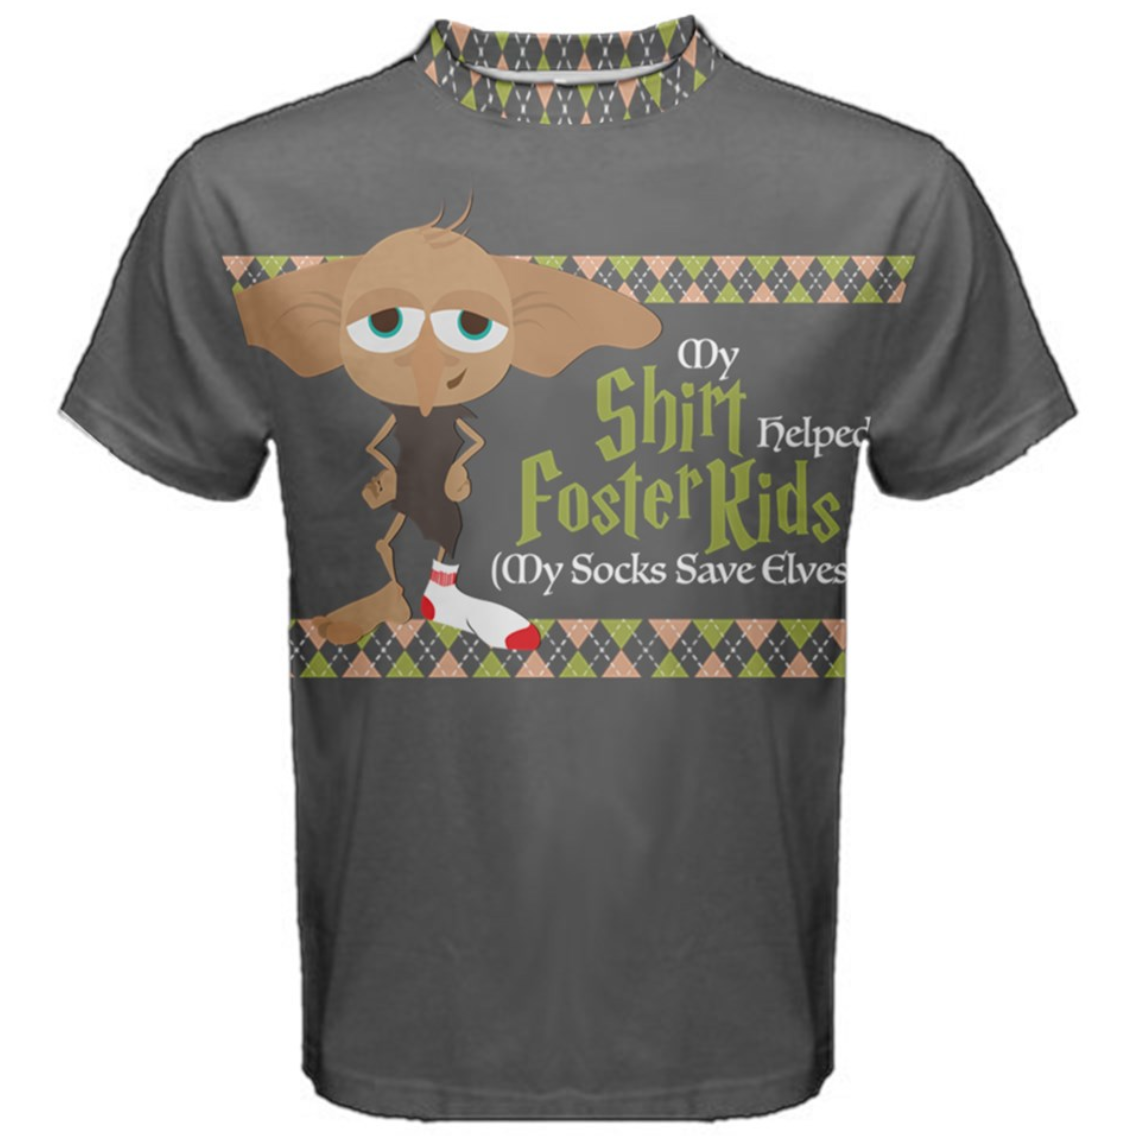 "Elf Shirt - ""My shirt helped a foster family..."" Tee (solid background)"